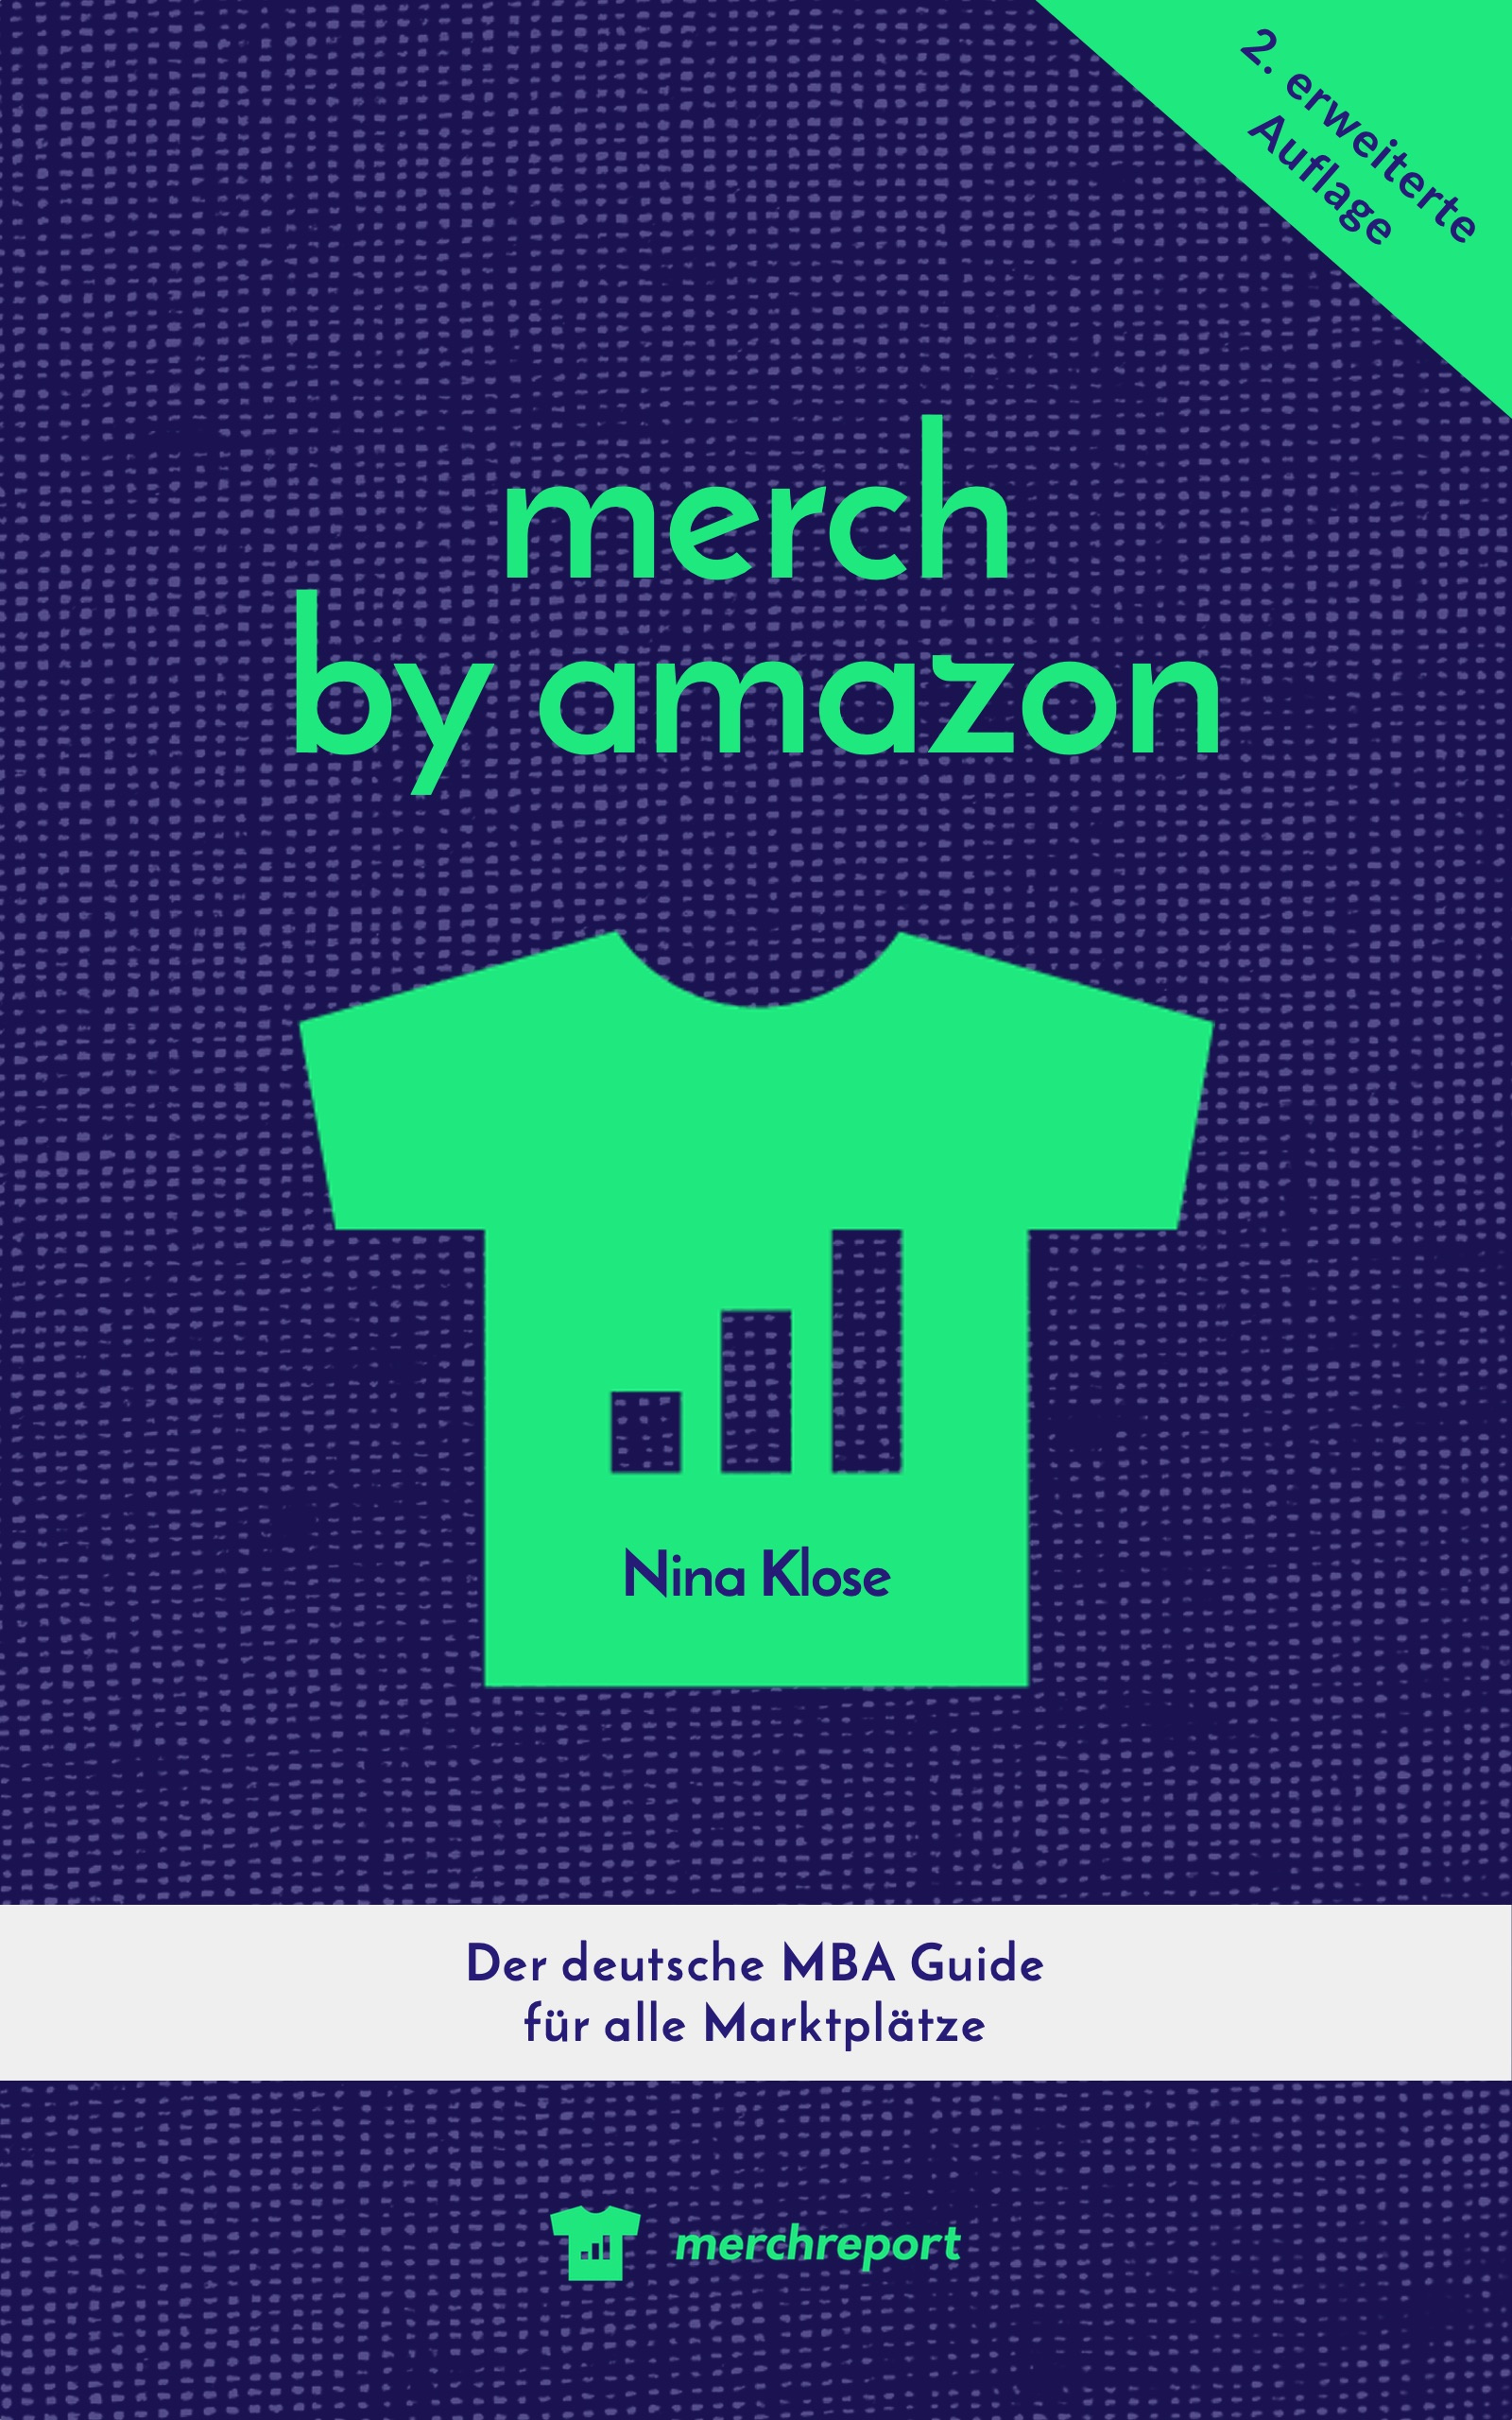 Merch by Amazon Guide